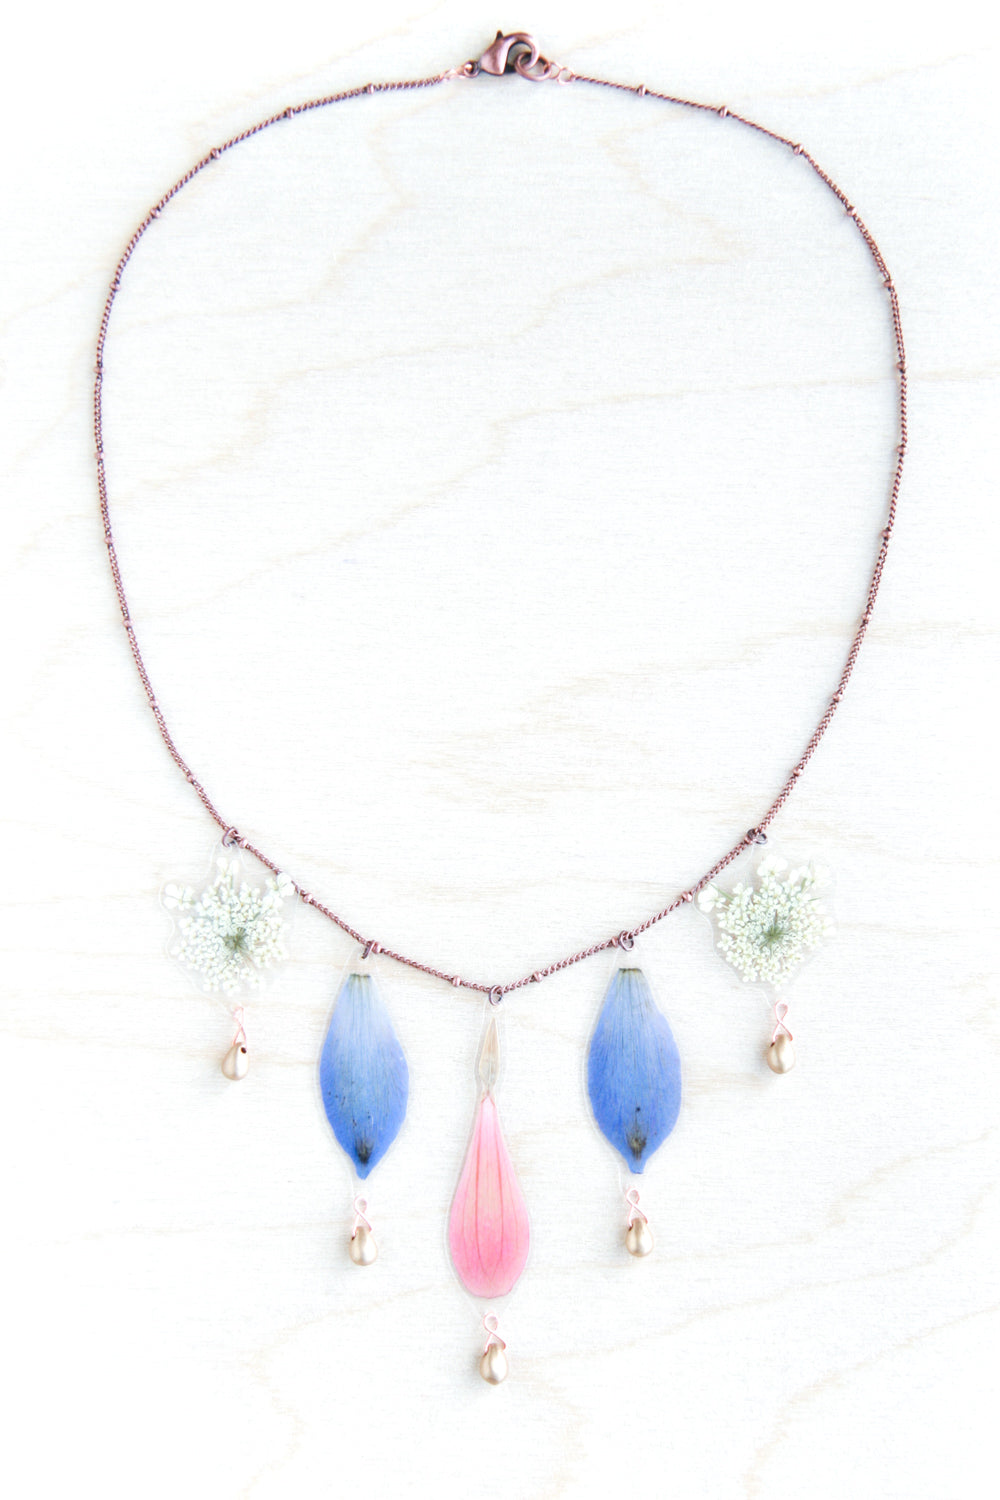 Pink Zinnia + Blue Delphinium + White Queen Anne's Lace Flower Beaded Bouquet Necklace